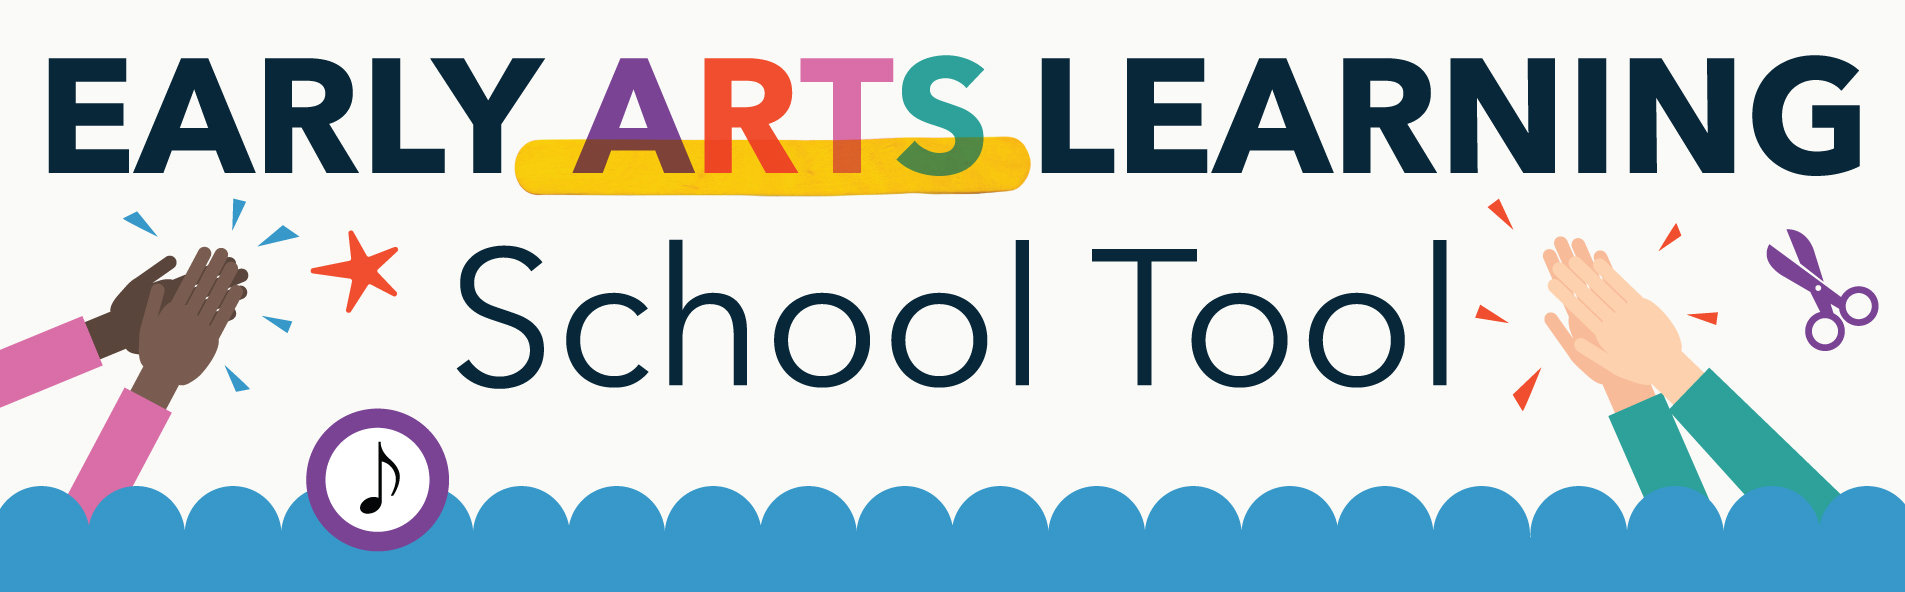 Early Arts Learning School Tool